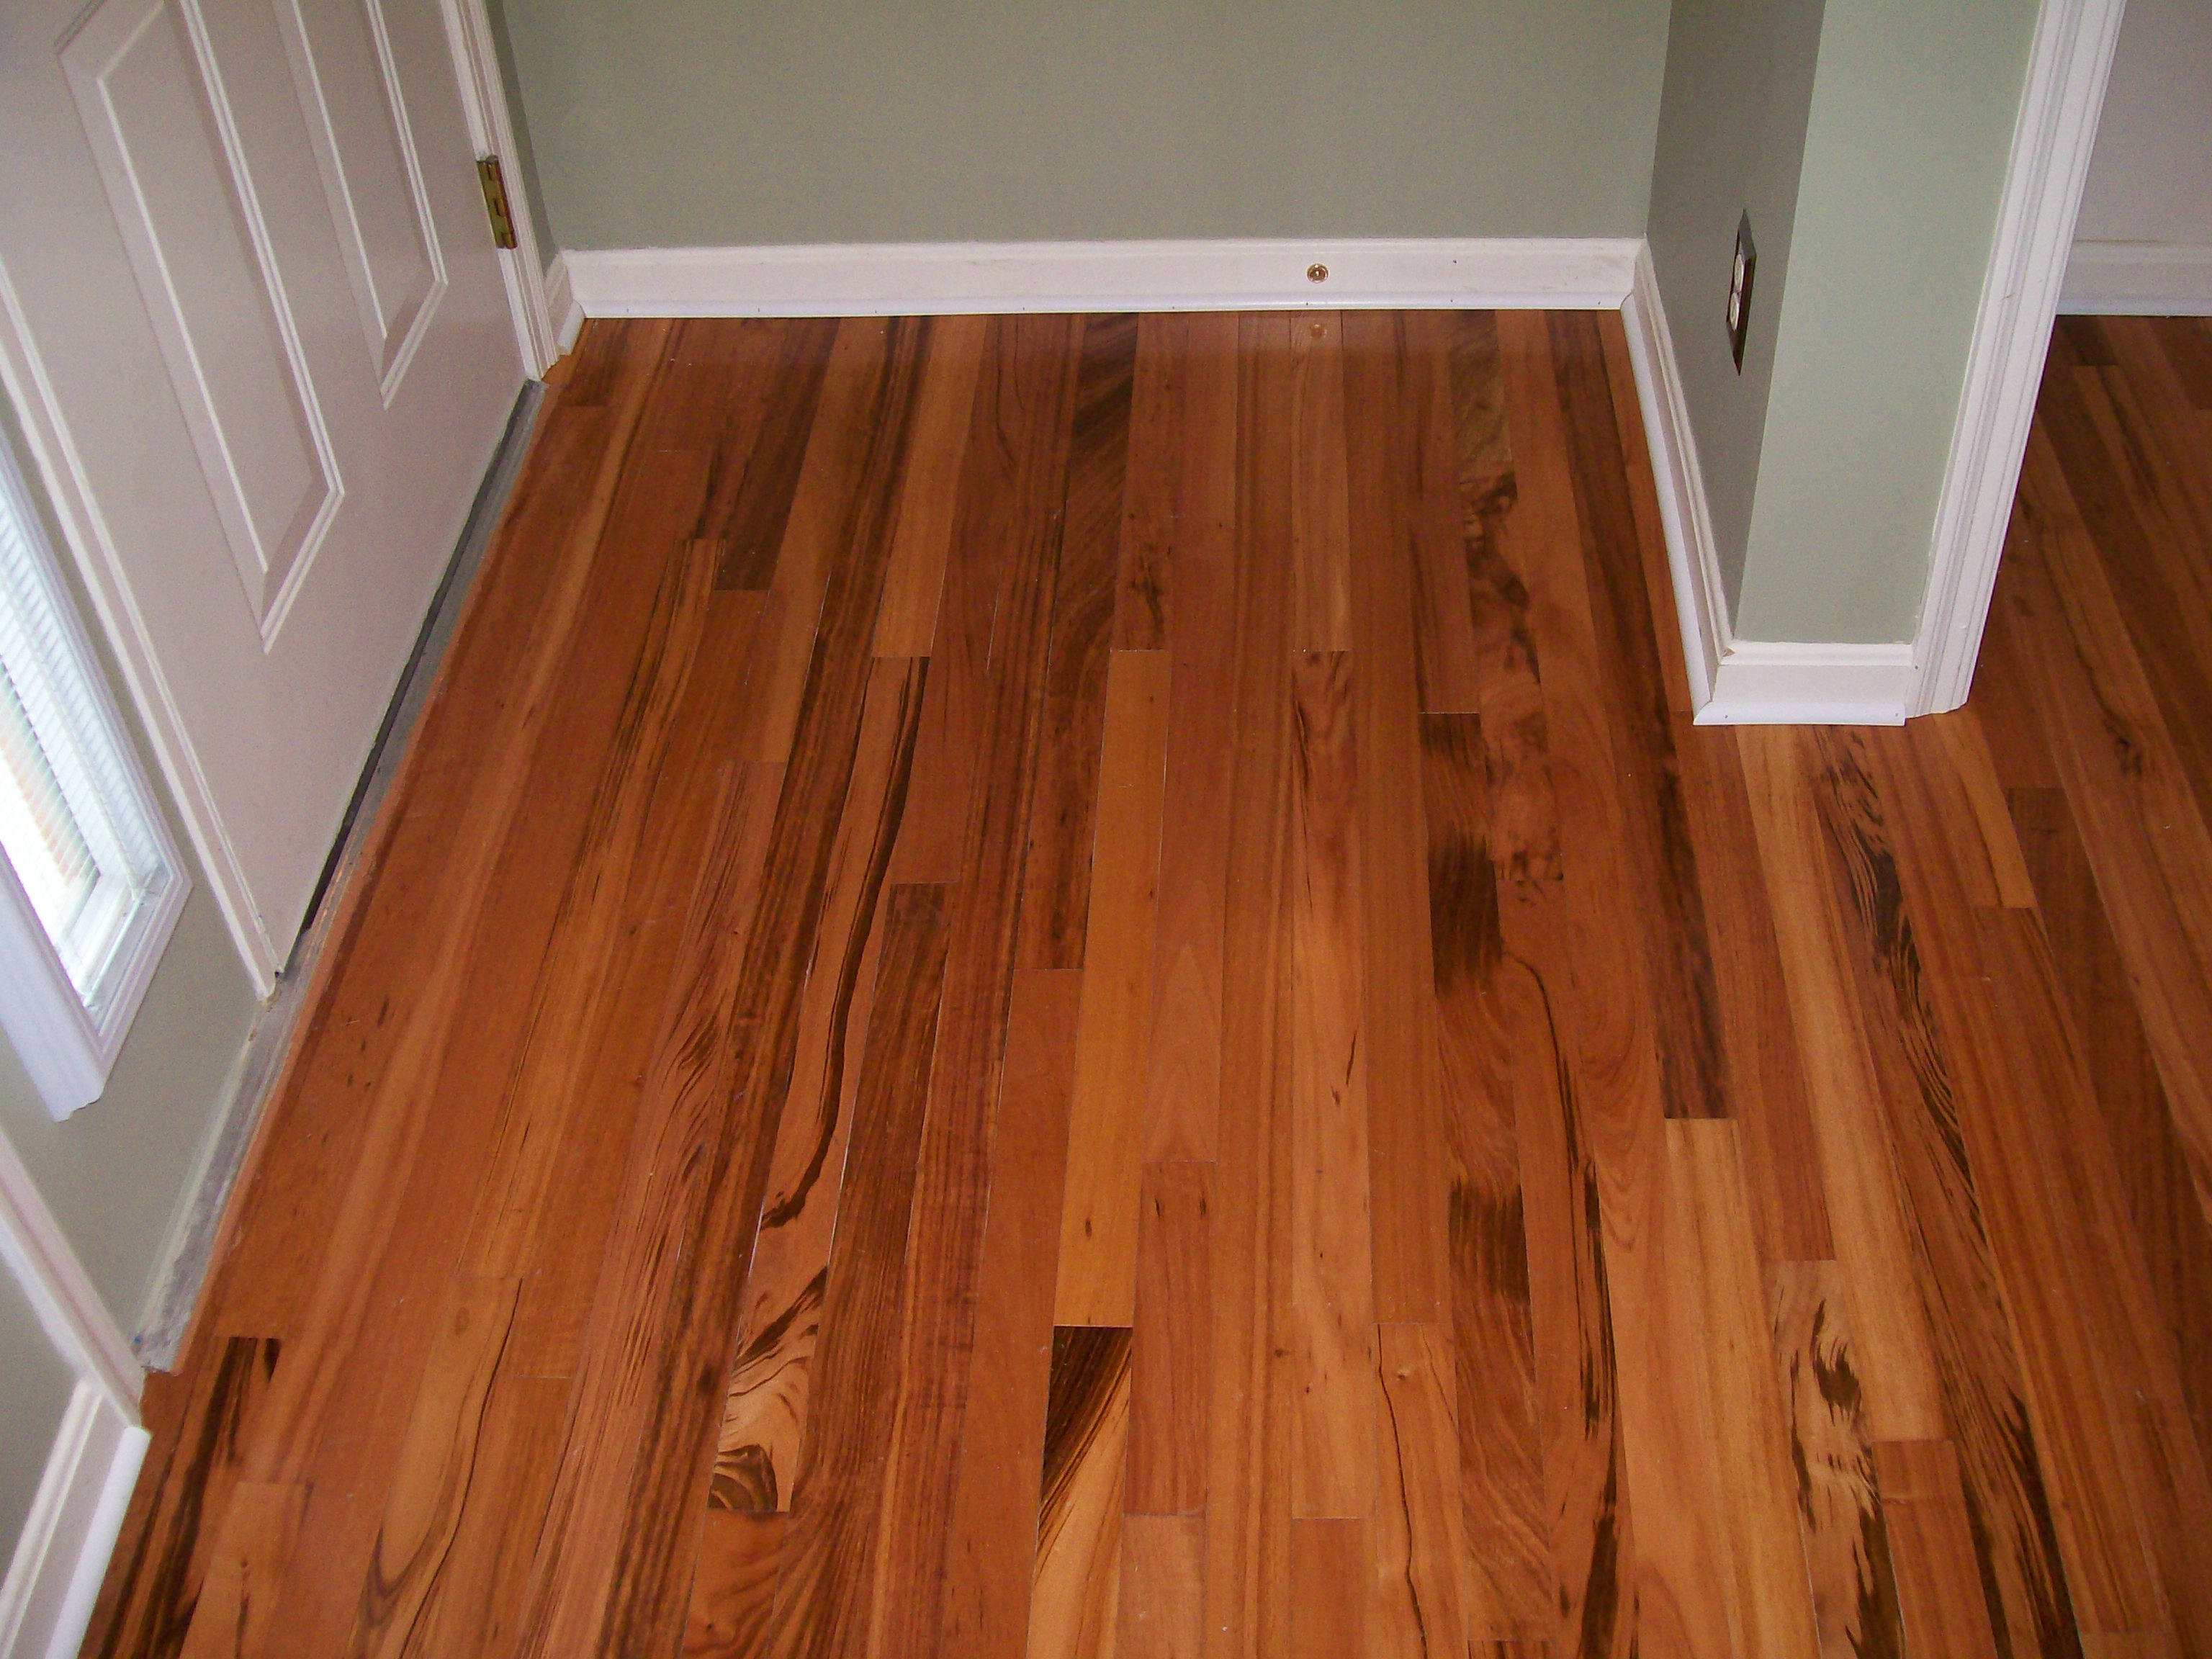 Costco Wood Flooring | Costco Carpeting | Costco Vinyl Flooring